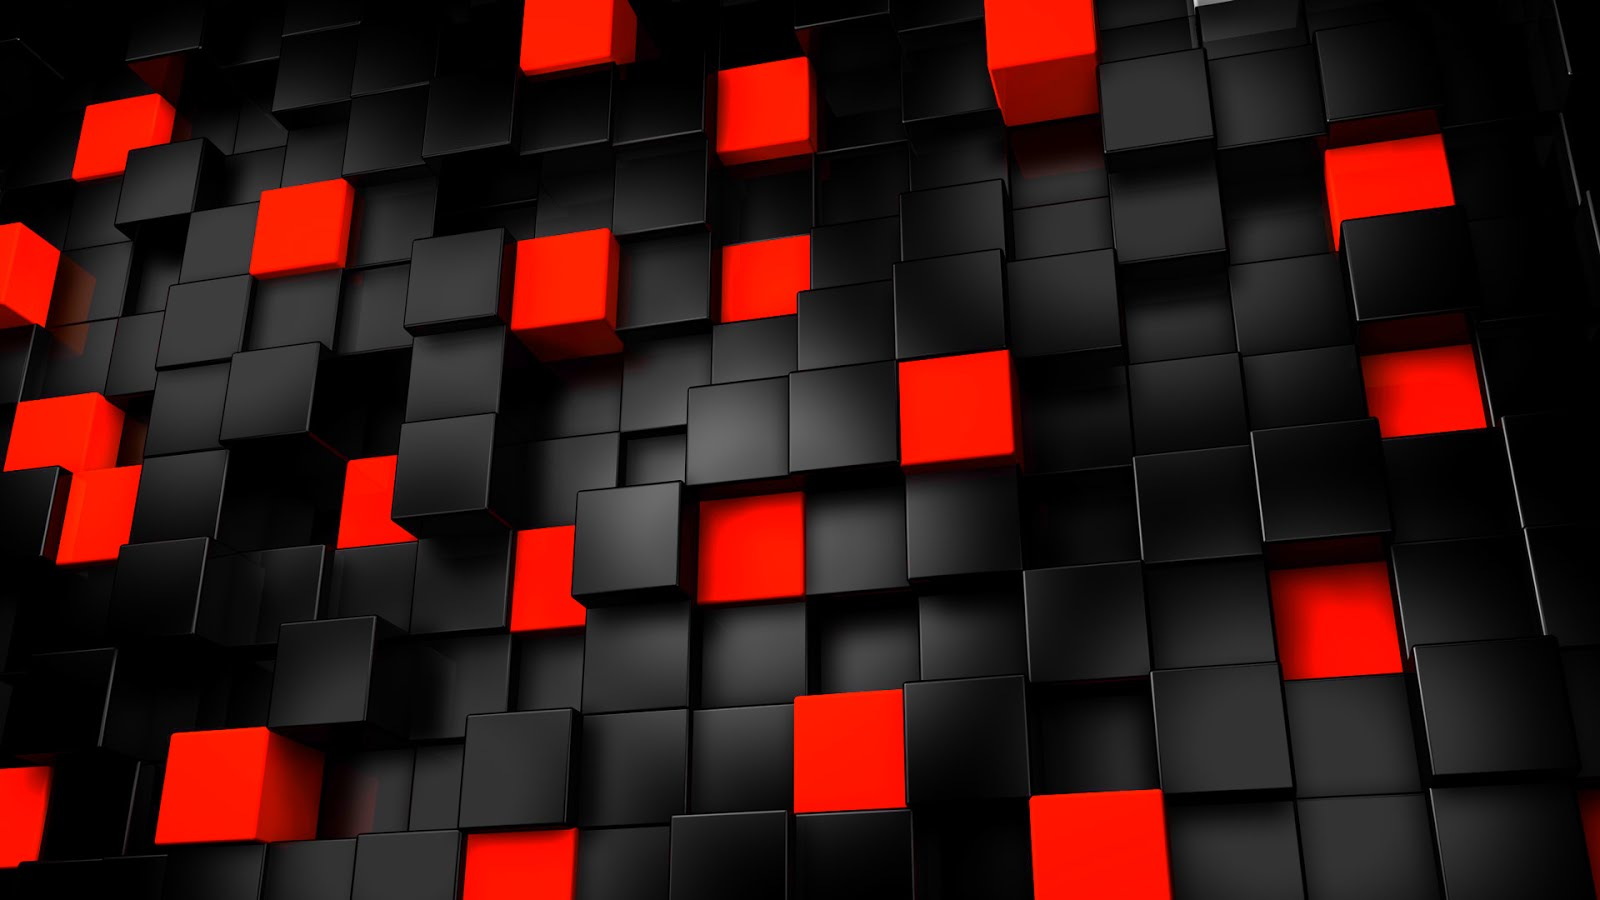 Wallpaper Hd 1080p Black And Red